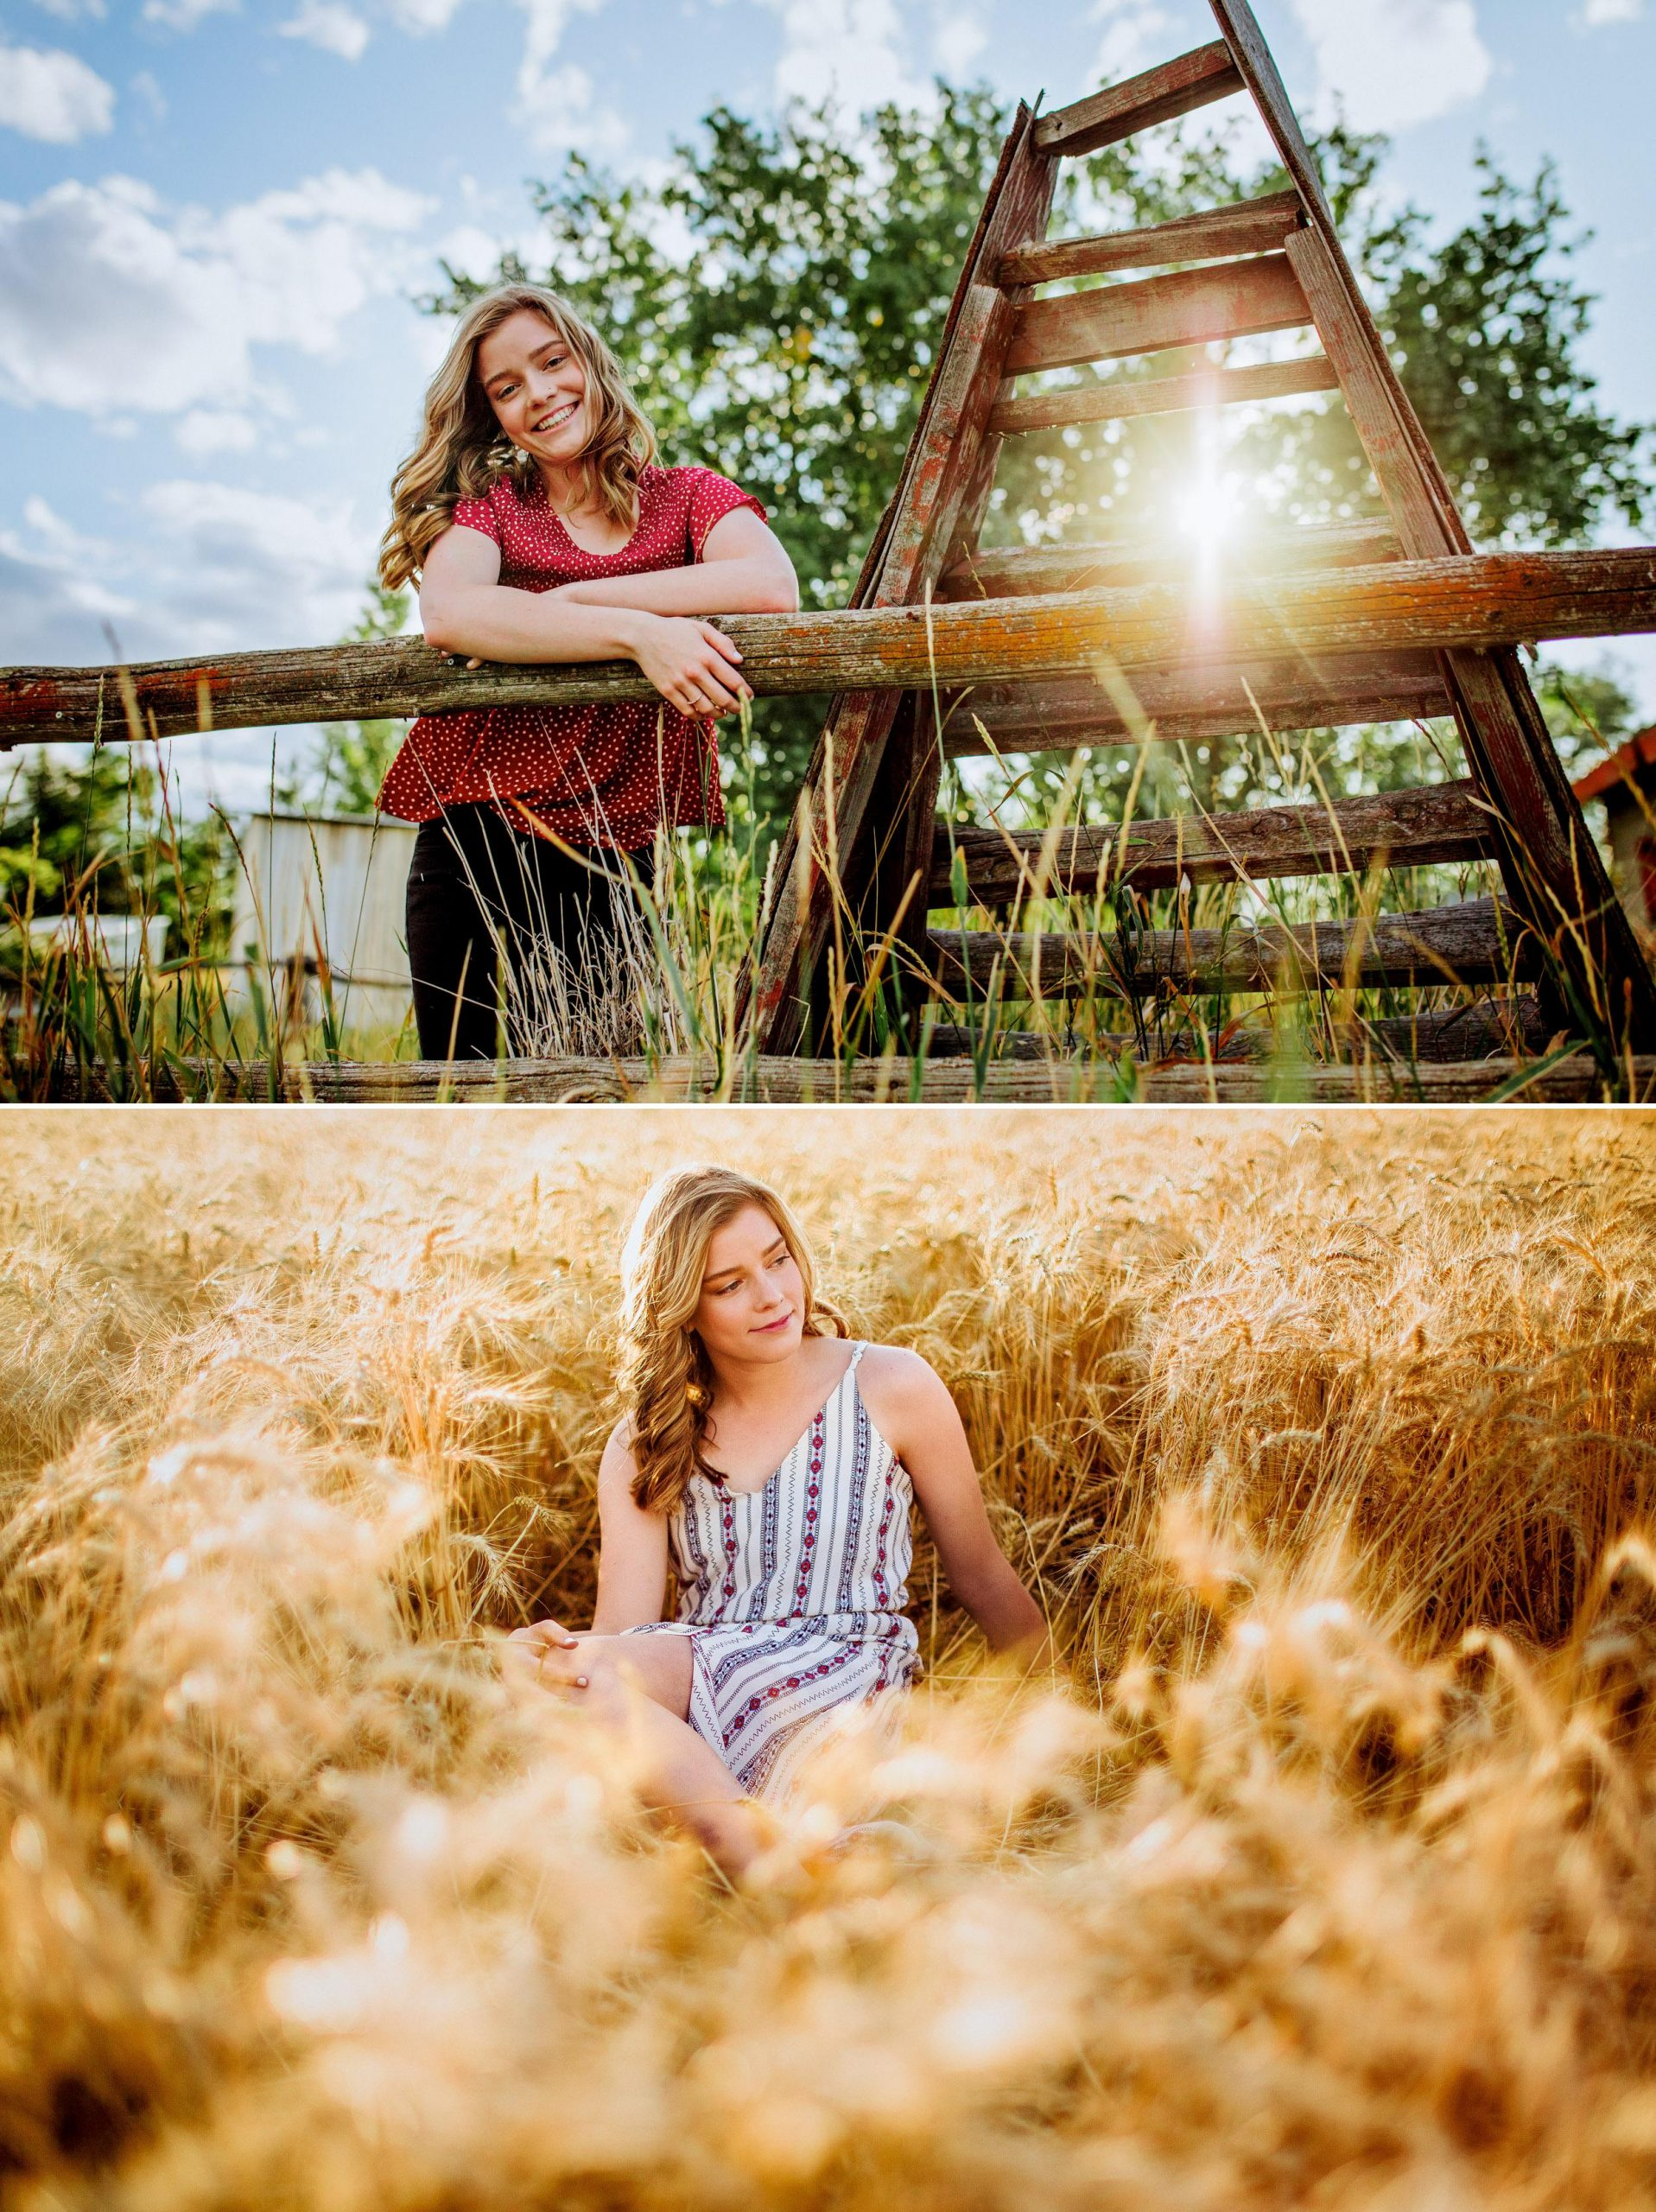 Maggie is a senior from great falls Montana